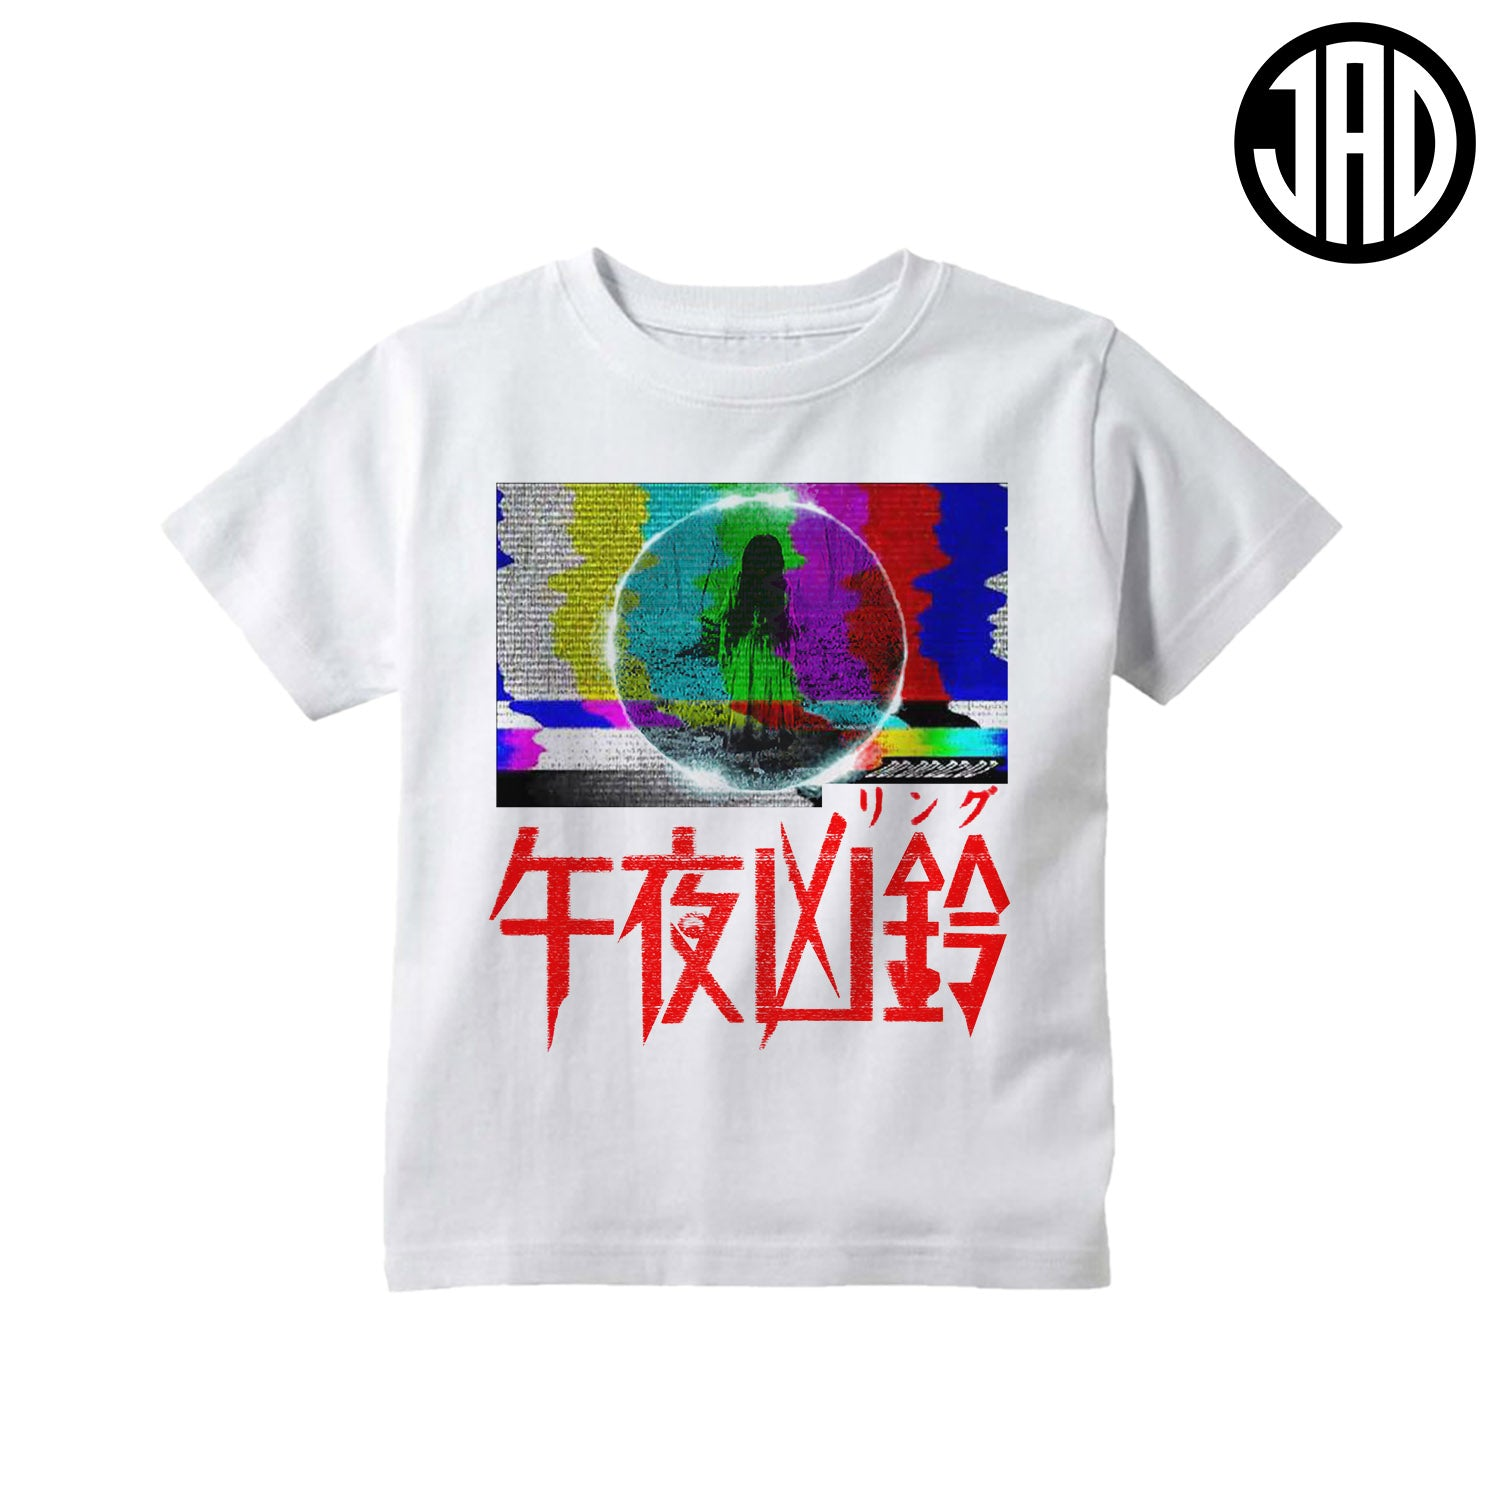 Ring Import - Kid's Tee